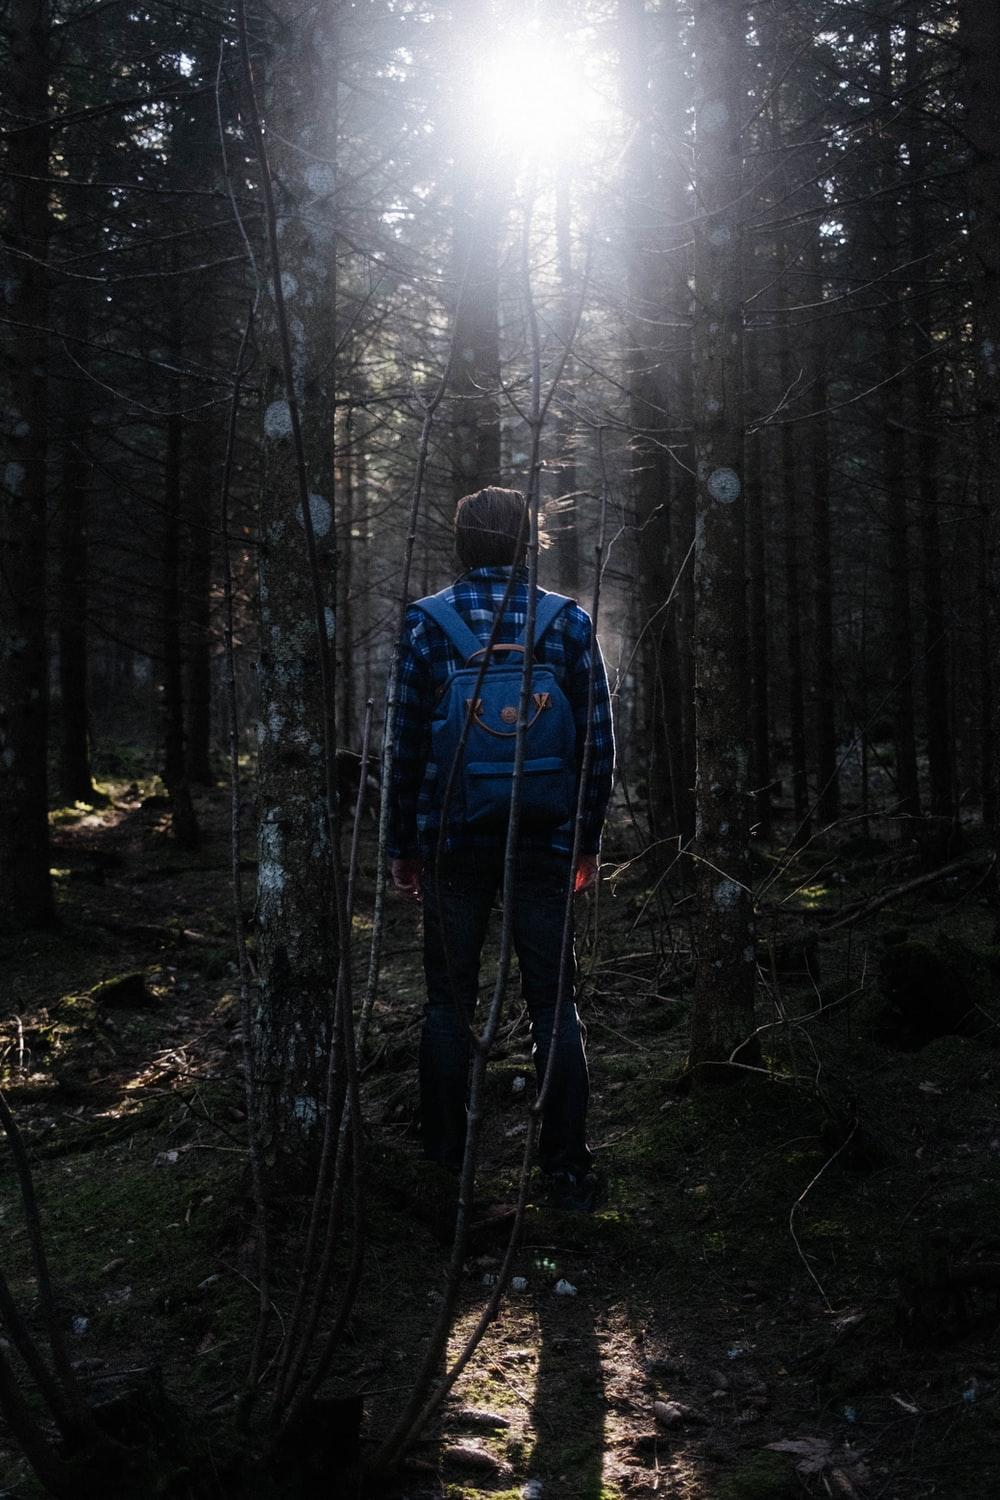 man in blue jacket standing in the woods